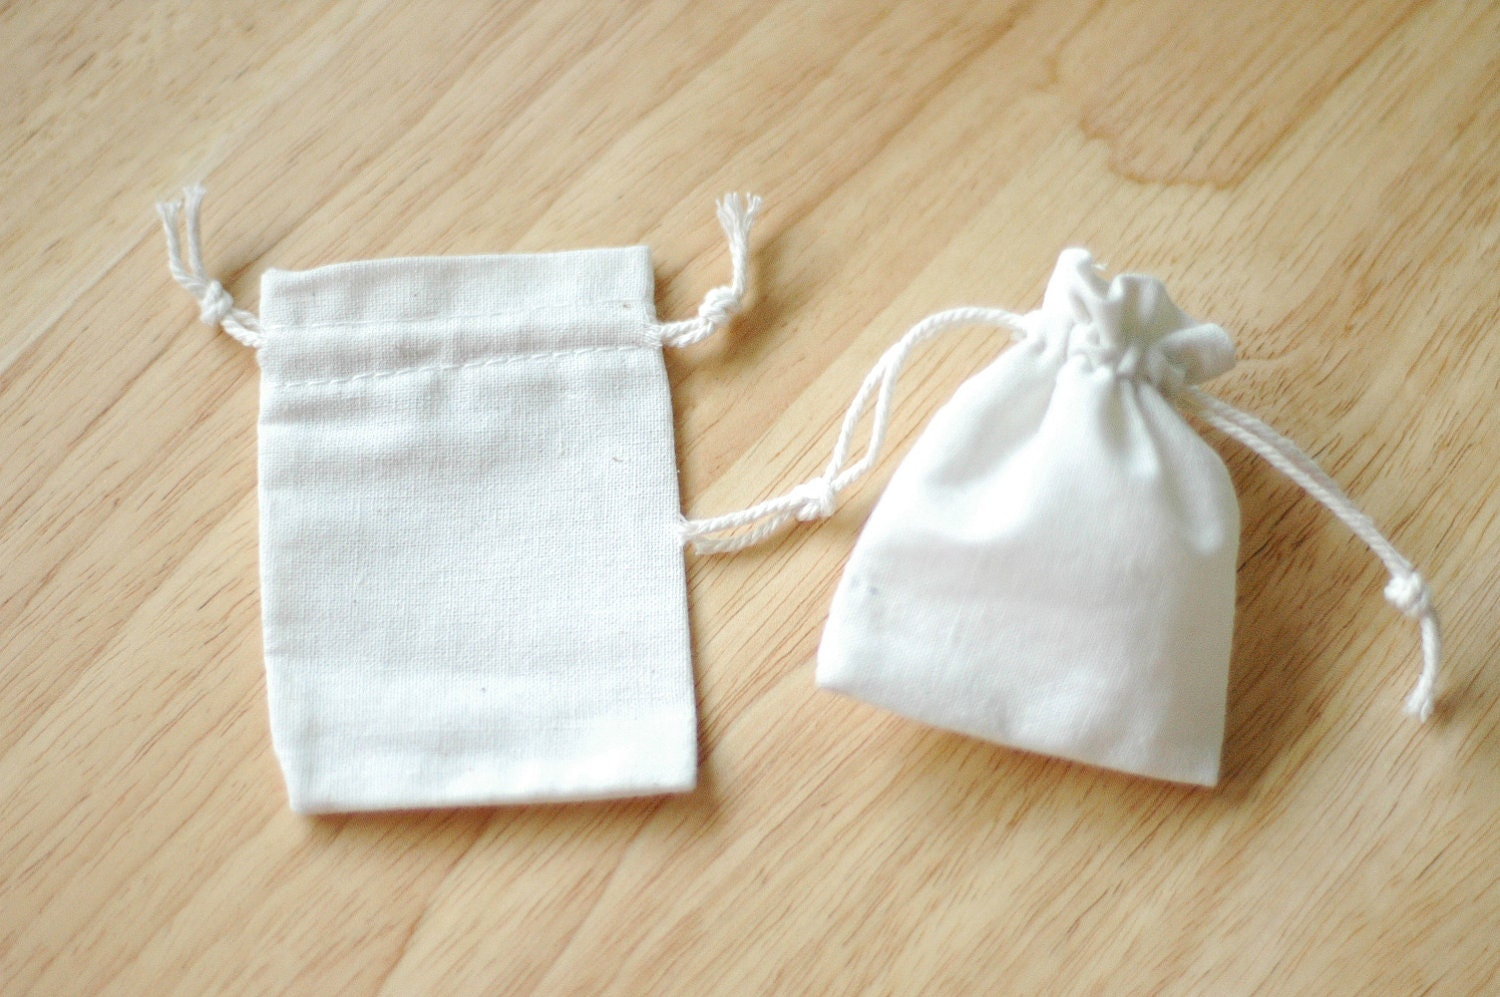 Extra Small Drawstring Bags Cotton Canvas Set of 12